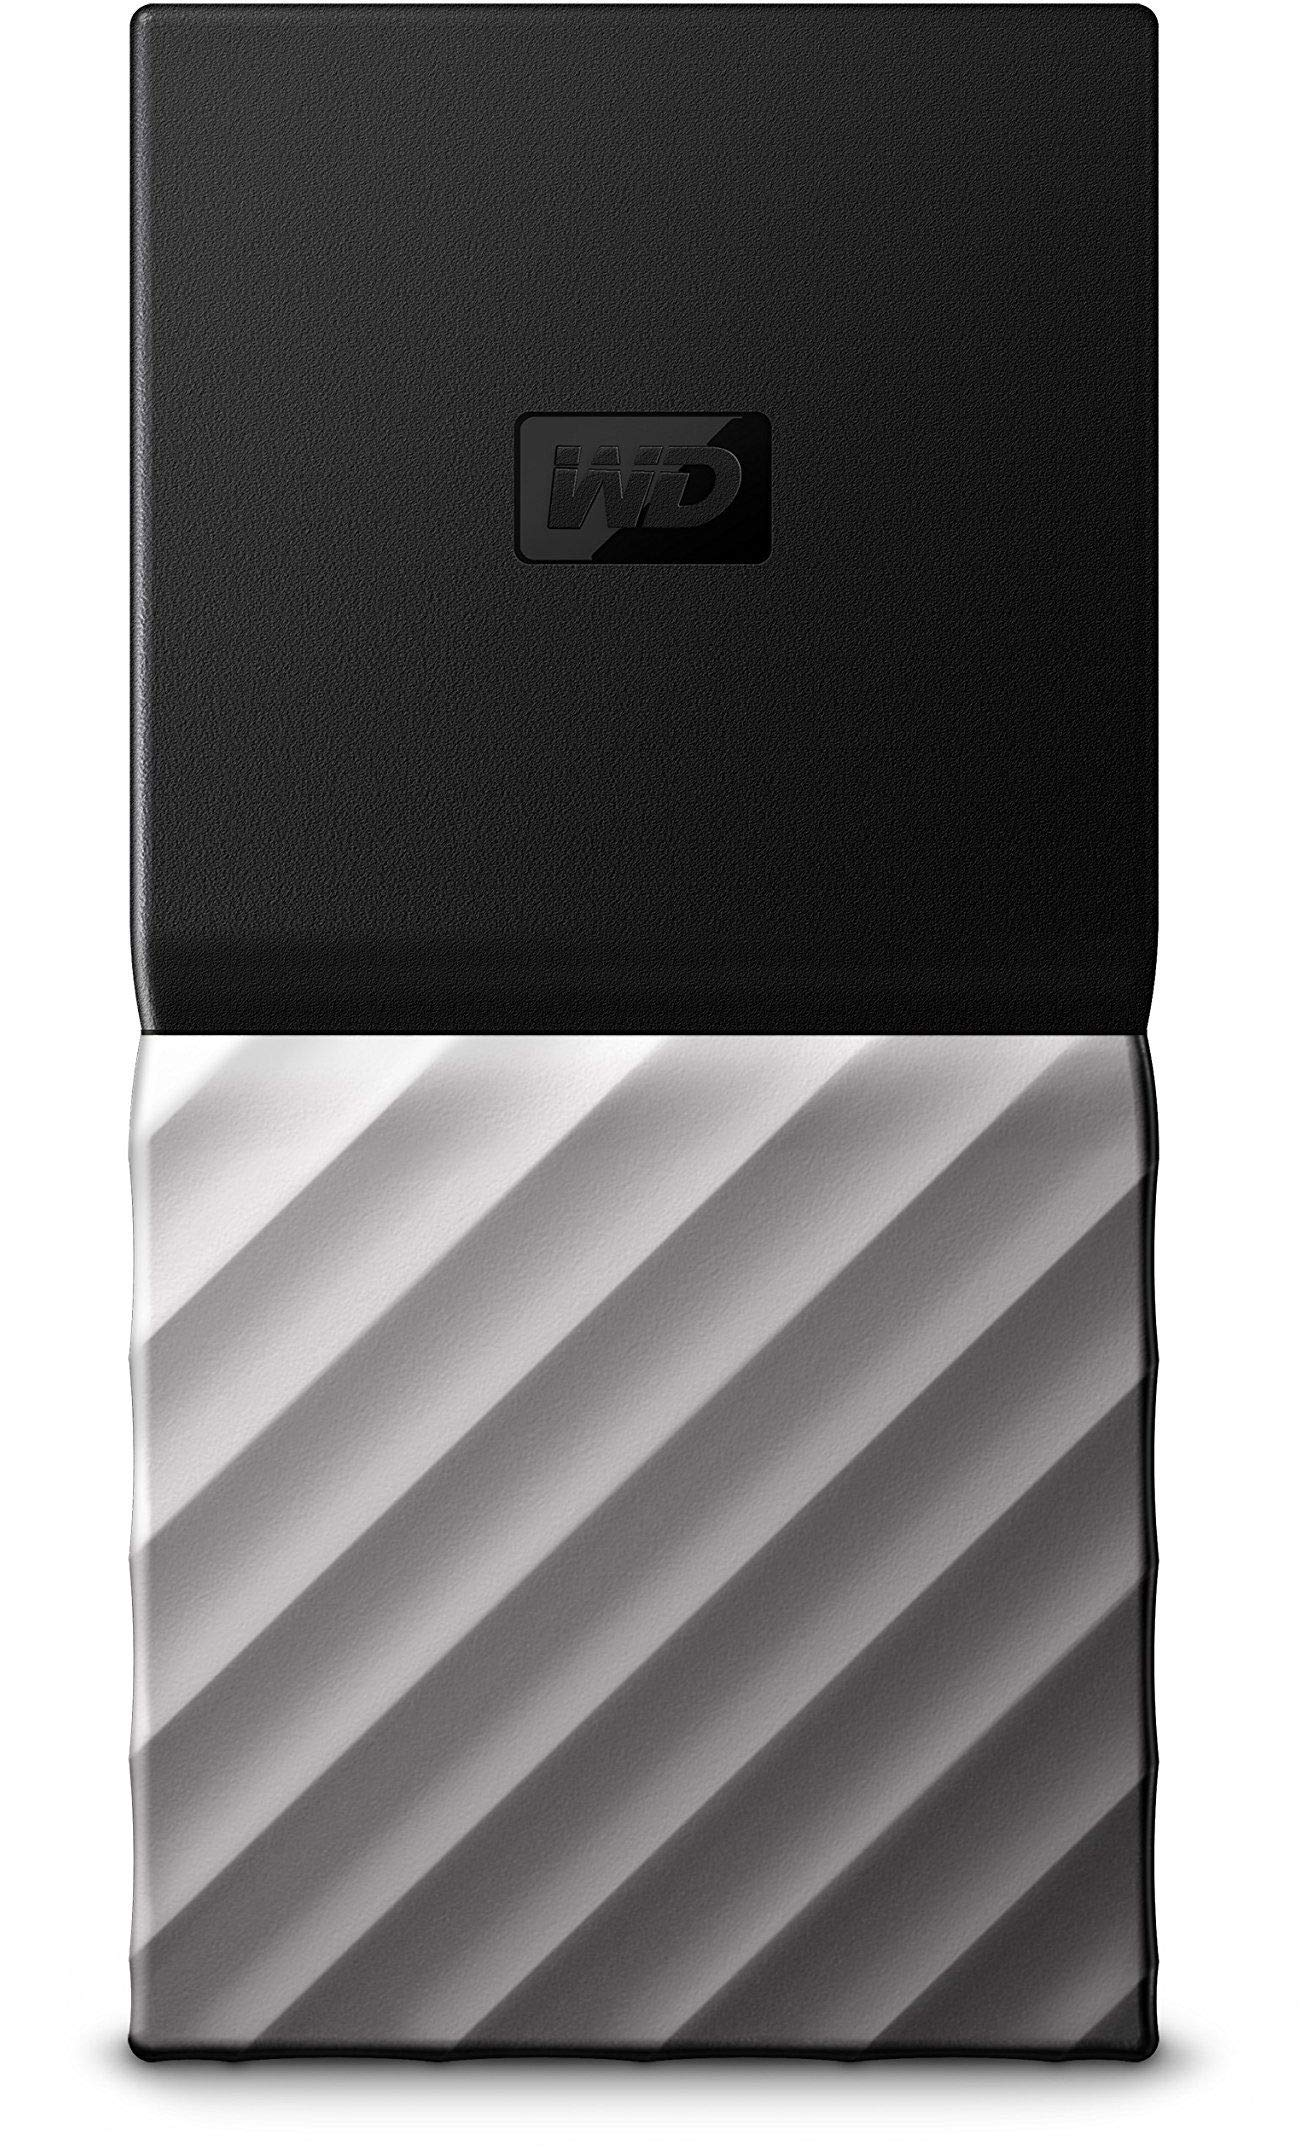 WD 256GB My Passport SSD Portable Storage - USB 3.1 - Black-Gray - WDBK3E2560PSL-WESN